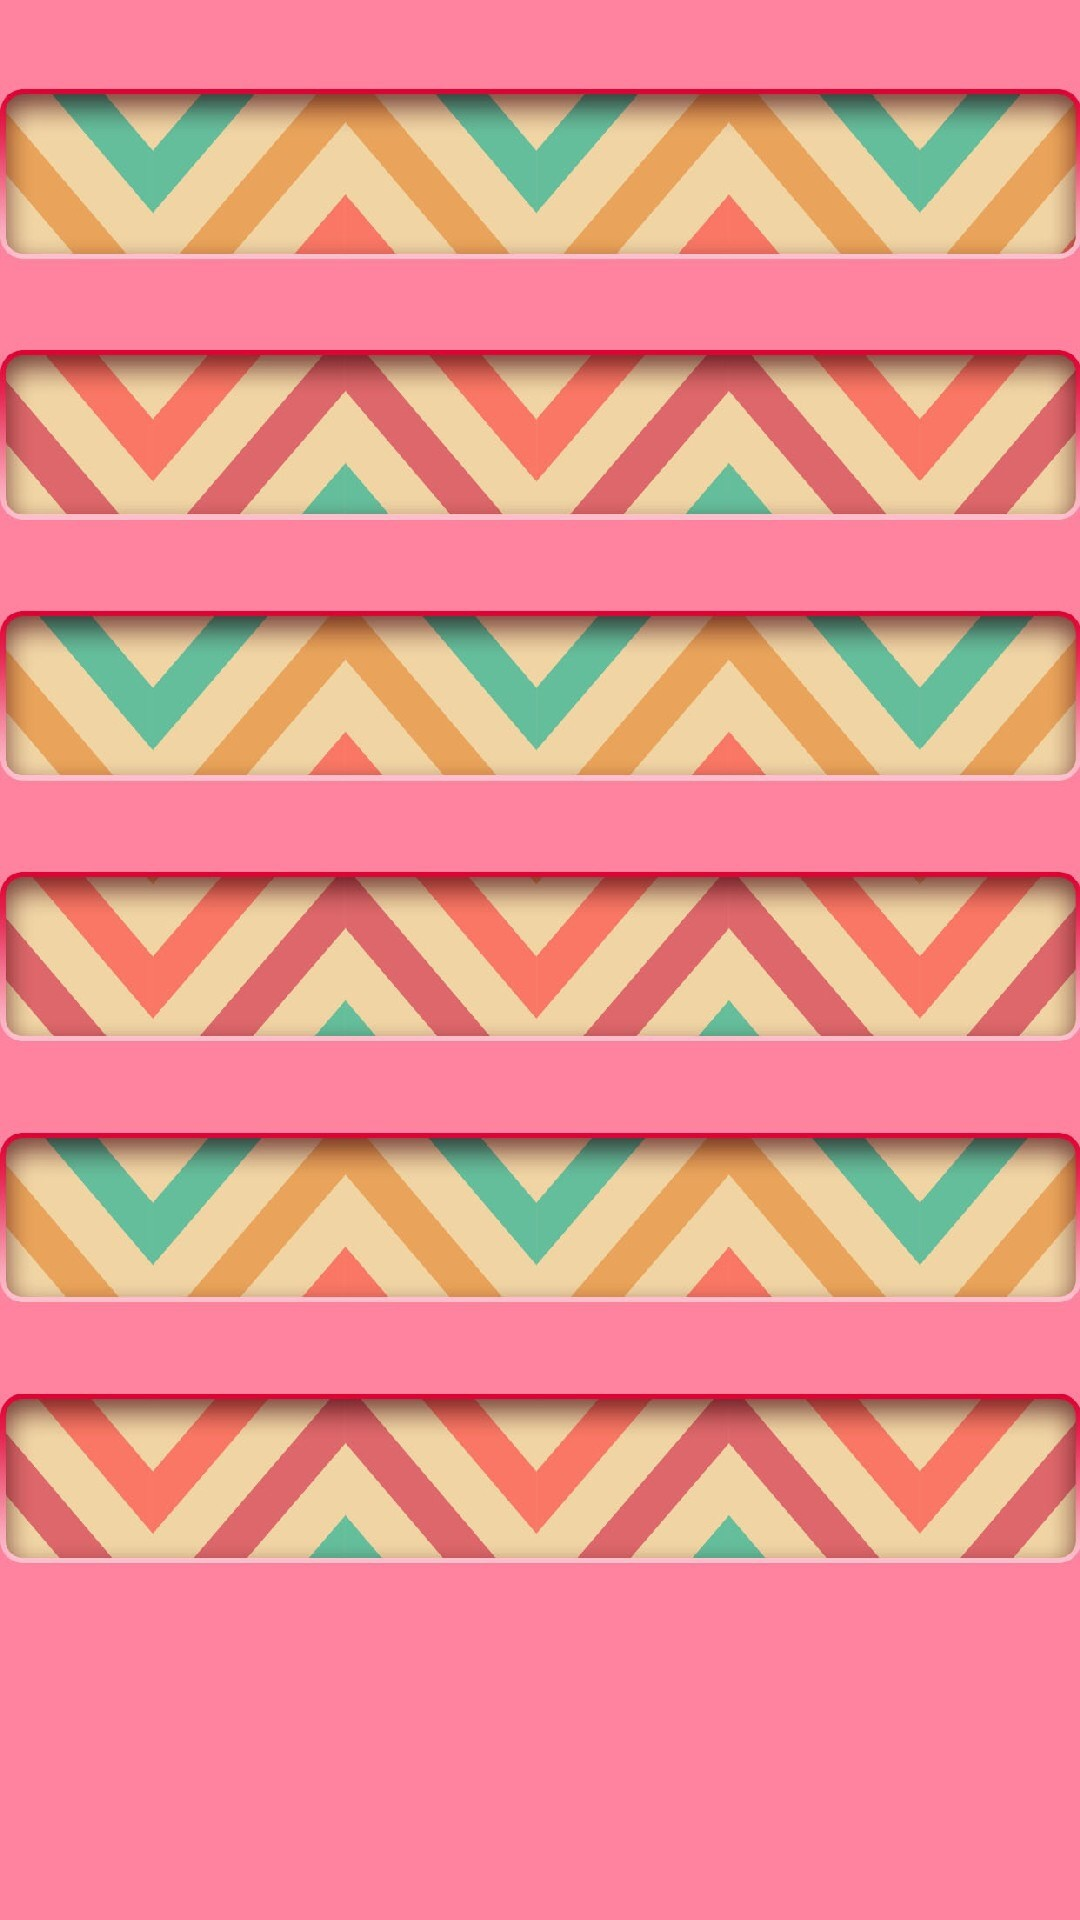 Flower Patterns Girly And App On Pinterest Shelves Colorful Zigzag Stripes  Pink Pattern Cool. lloyd …